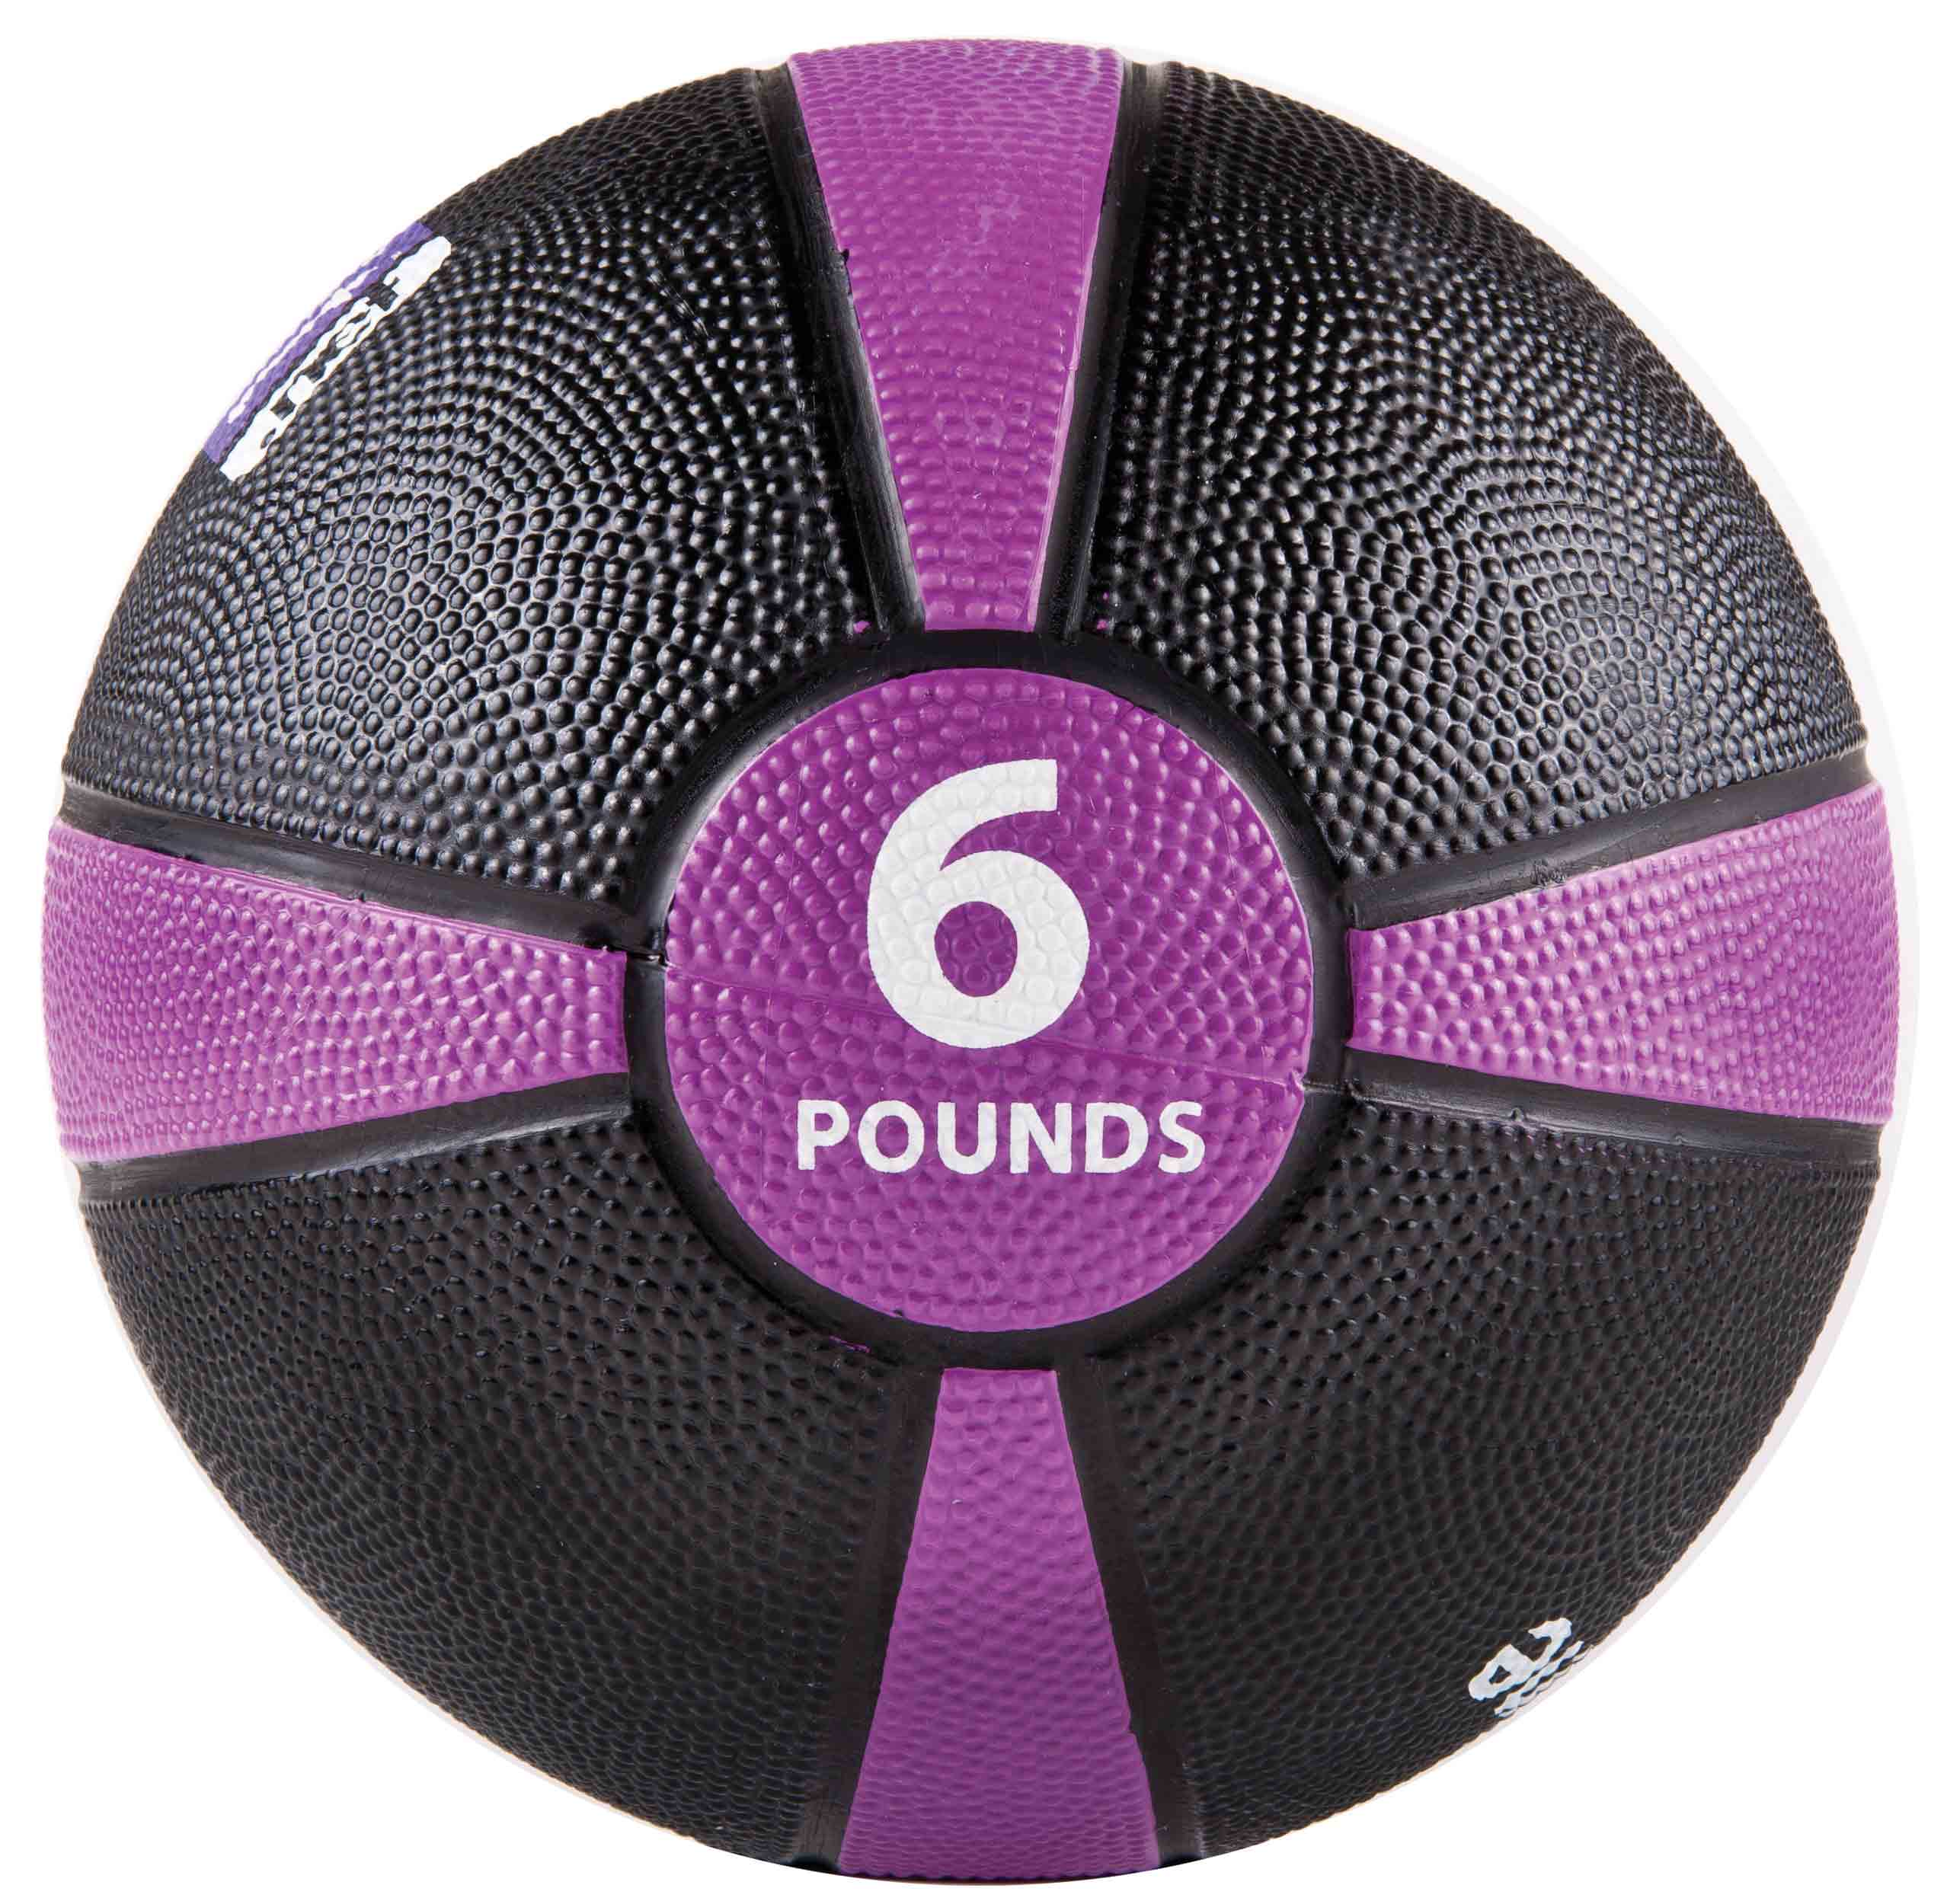 Rubber Medicine Ball with Training Manual - 6lb Purple/Black